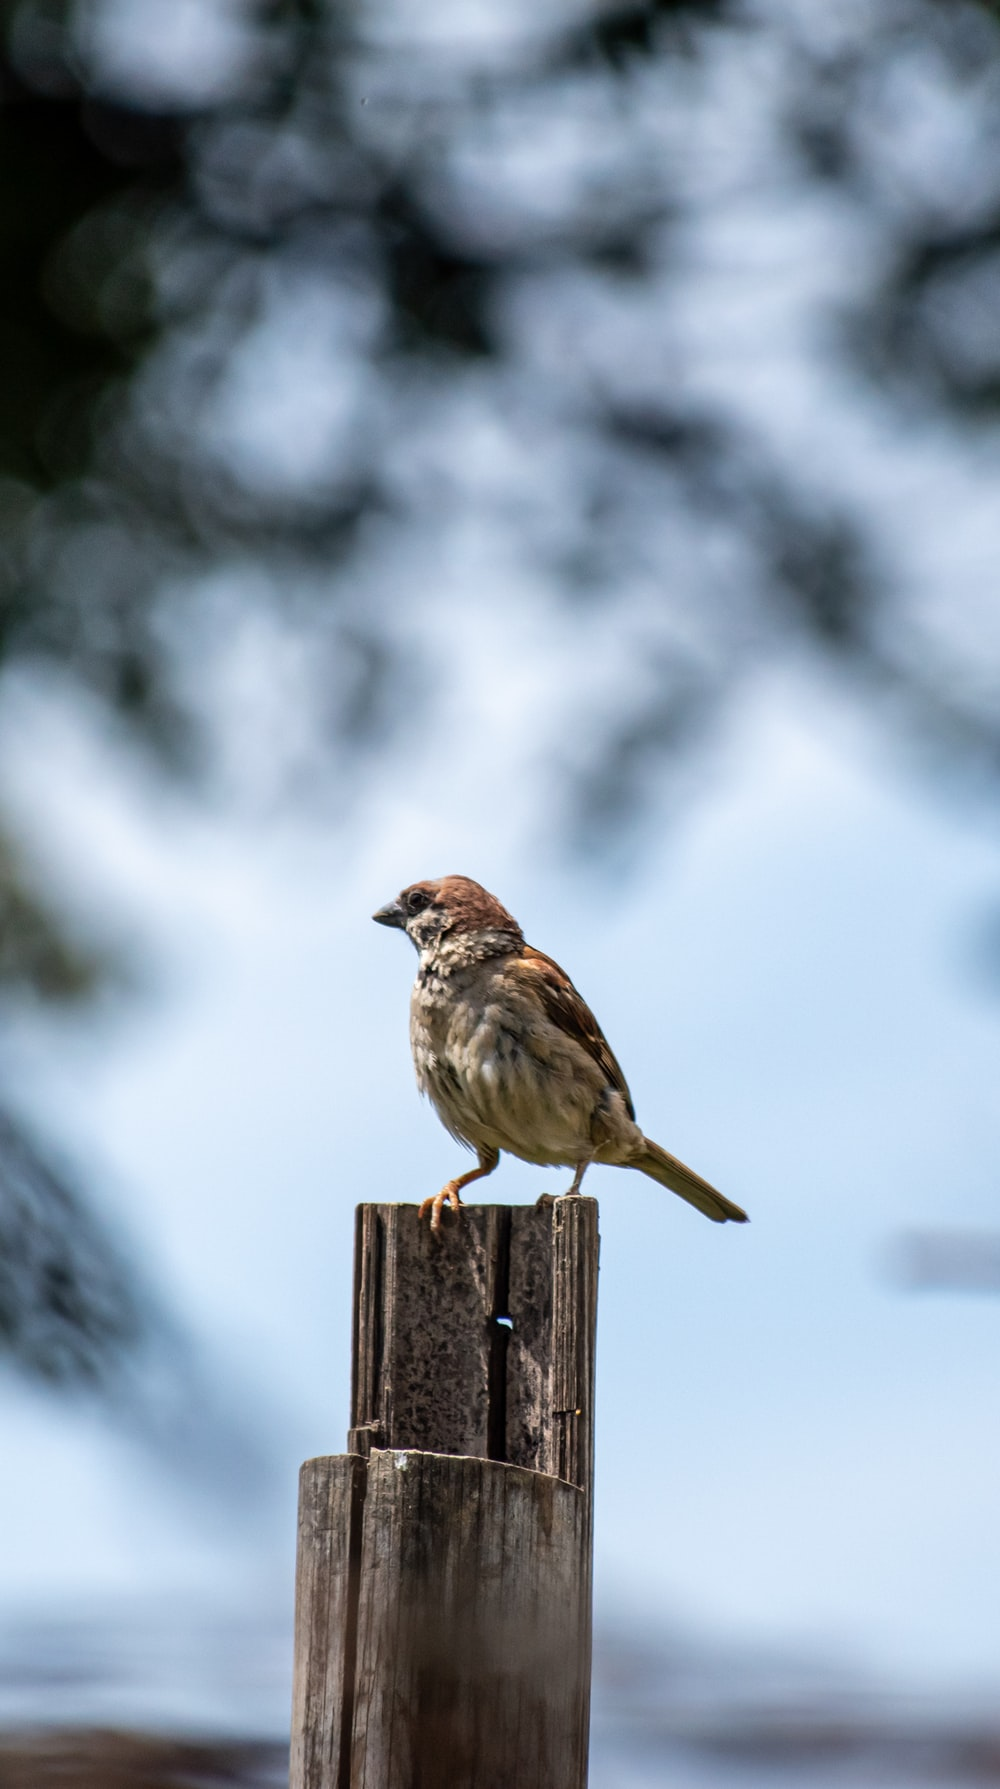 brown sparrow perched on brown wooden fence